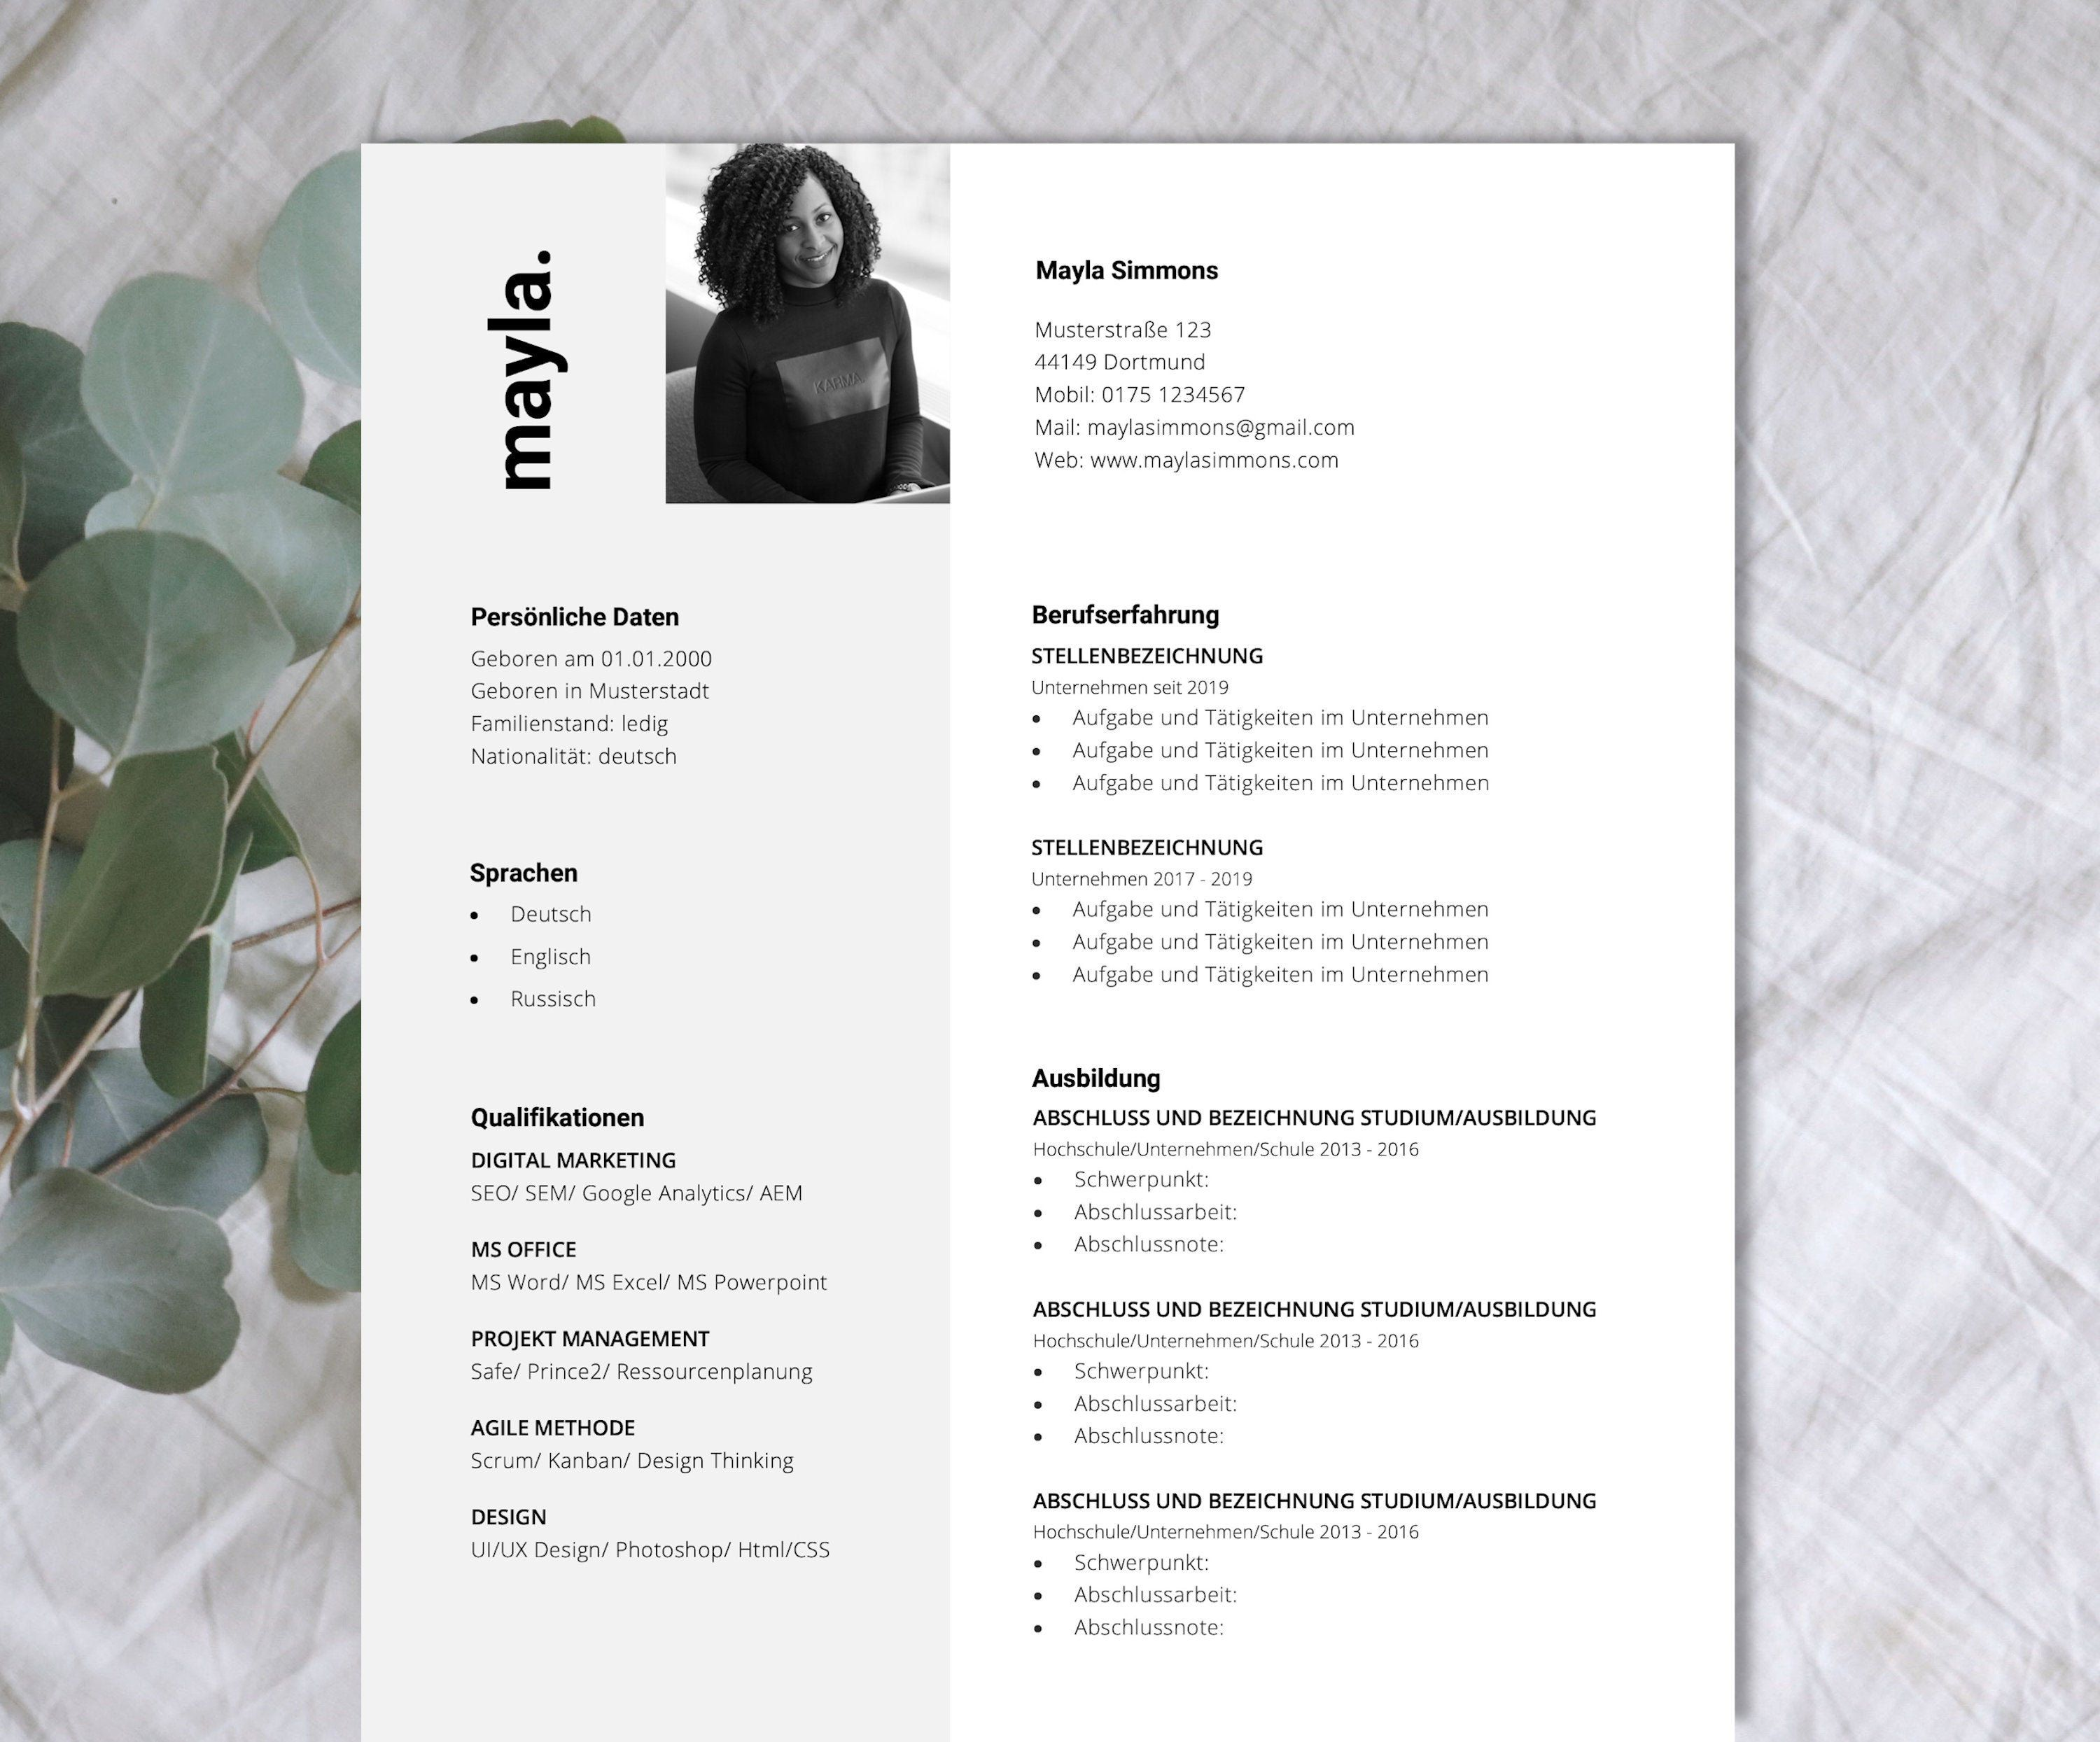 Application Template English Cover Page Cover Letter Cv And Attachment Directory For Word And Pages Mayla Lebenslauf Moderner Lebenslauf Deckblatt